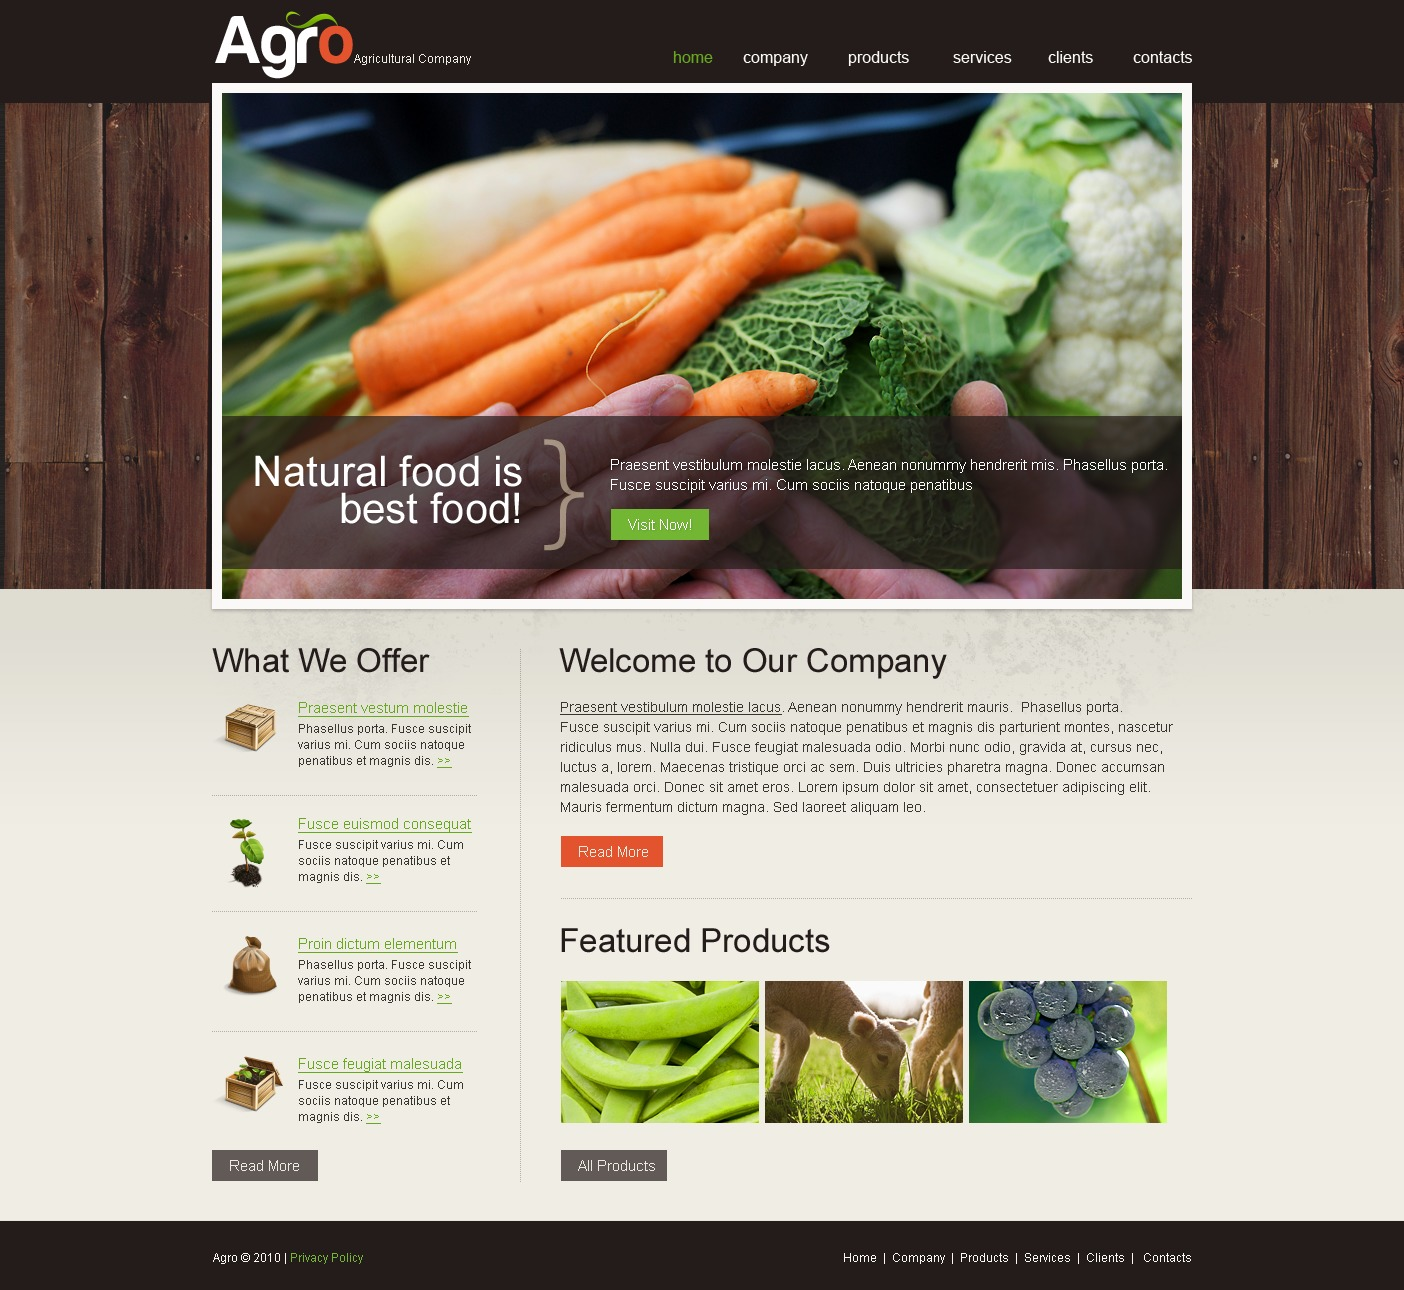 The Agro Agriculture Company PSD Design 54217, one of the best PSD templates of its kind (agriculture, flash 8, wide), also known as agro agriculture company PSD template, business PSD template, grain-crops PSD template, cereals PSD template, field PSD template, combine PSD template, harvest PSD template, farming PSD template, plants PSD template, services PSD template, products solutions PSD template, market PSD template, delivery PSD template, resource PSD template, grassland PSD template, equipment PSD template, nitrates PSD template, fertilizer PSD template, clients PSD template, partners PSD template, innovations PSD template, support PSD template, information dealer PSD template, stocks and related with agro agriculture company, business, grain-crops, cereals, field, combine, harvest, farming, plants, services, products solutions, market, delivery, resource, grassland, equipment, nitrates, fertilizer, clients, partners, innovations, support, information dealer, stocks, etc.